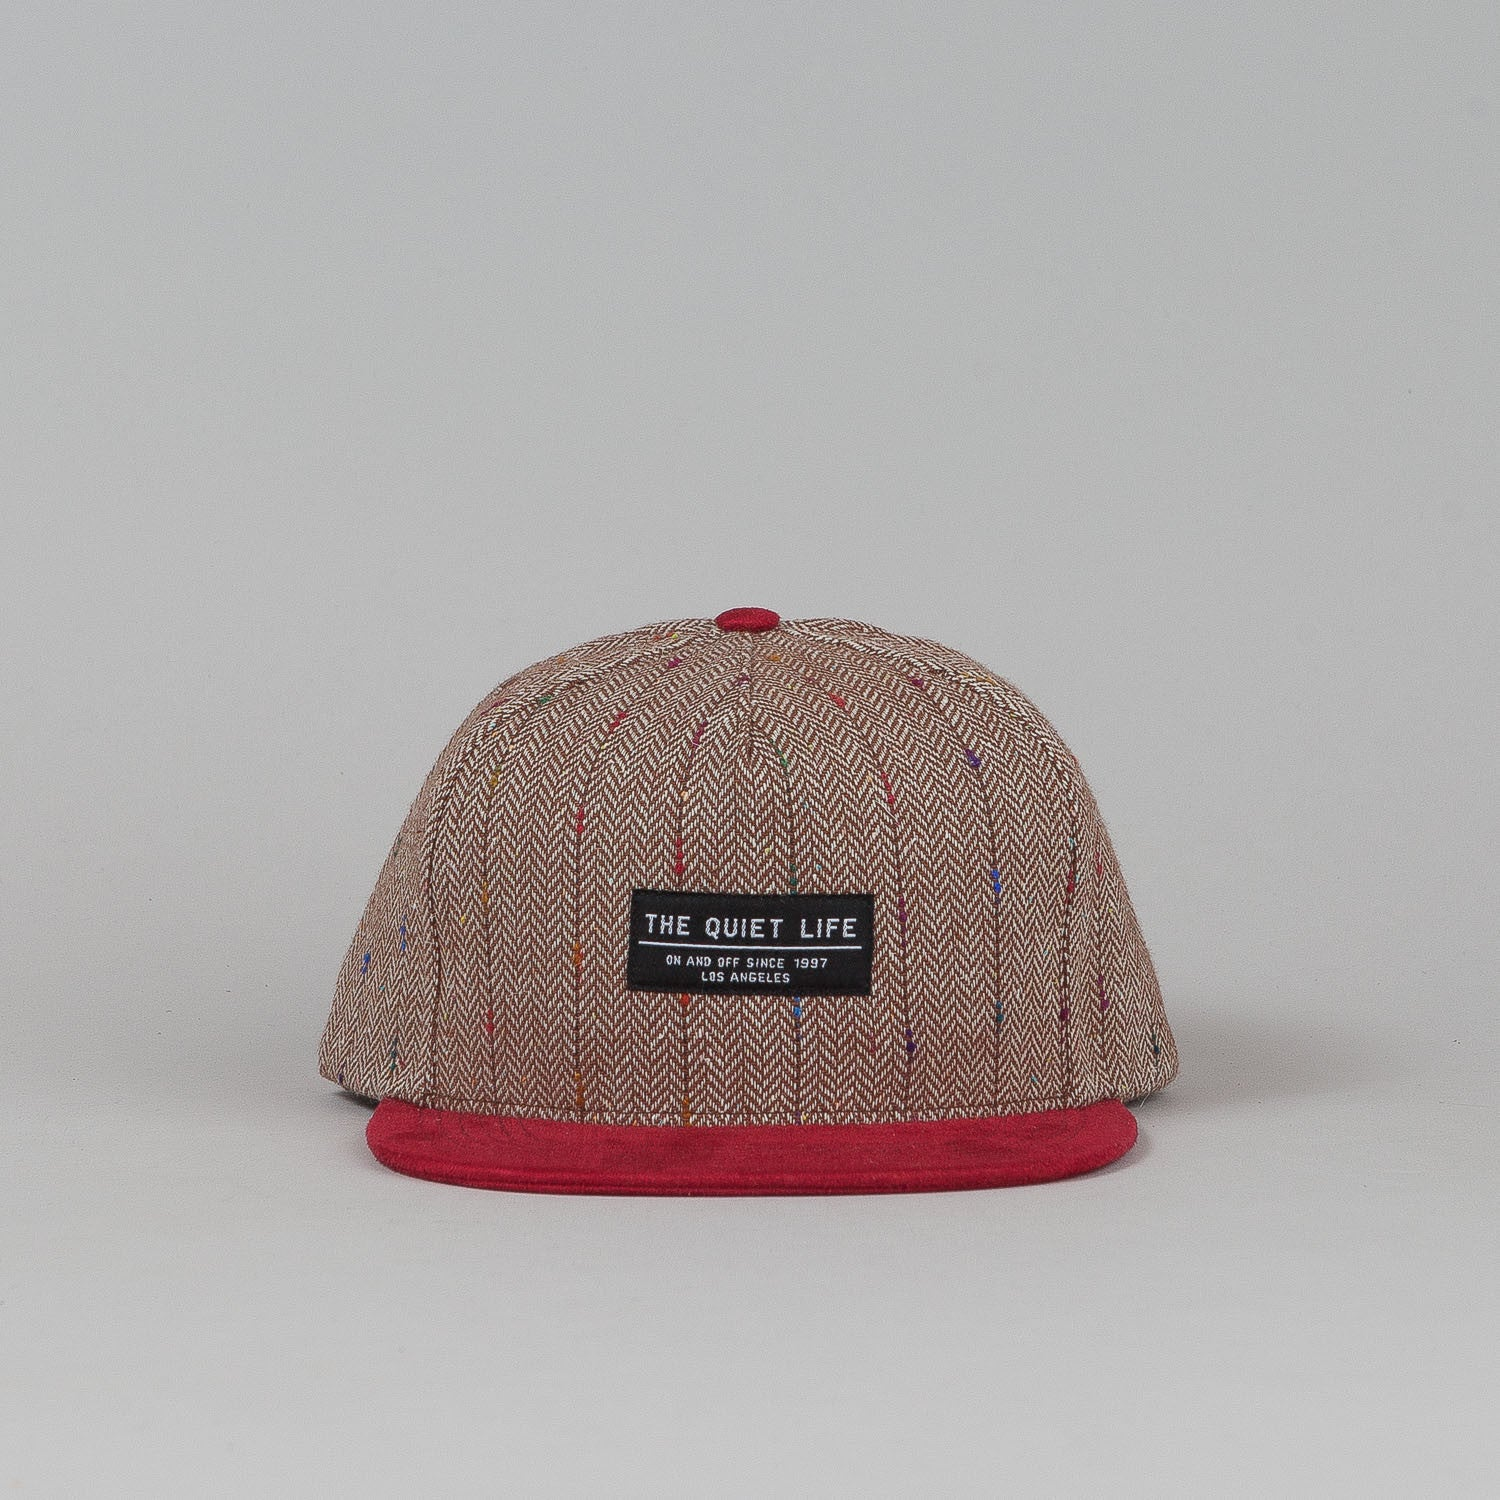 The Quiet Life Murphy Tweed Snapback Cap - Brown